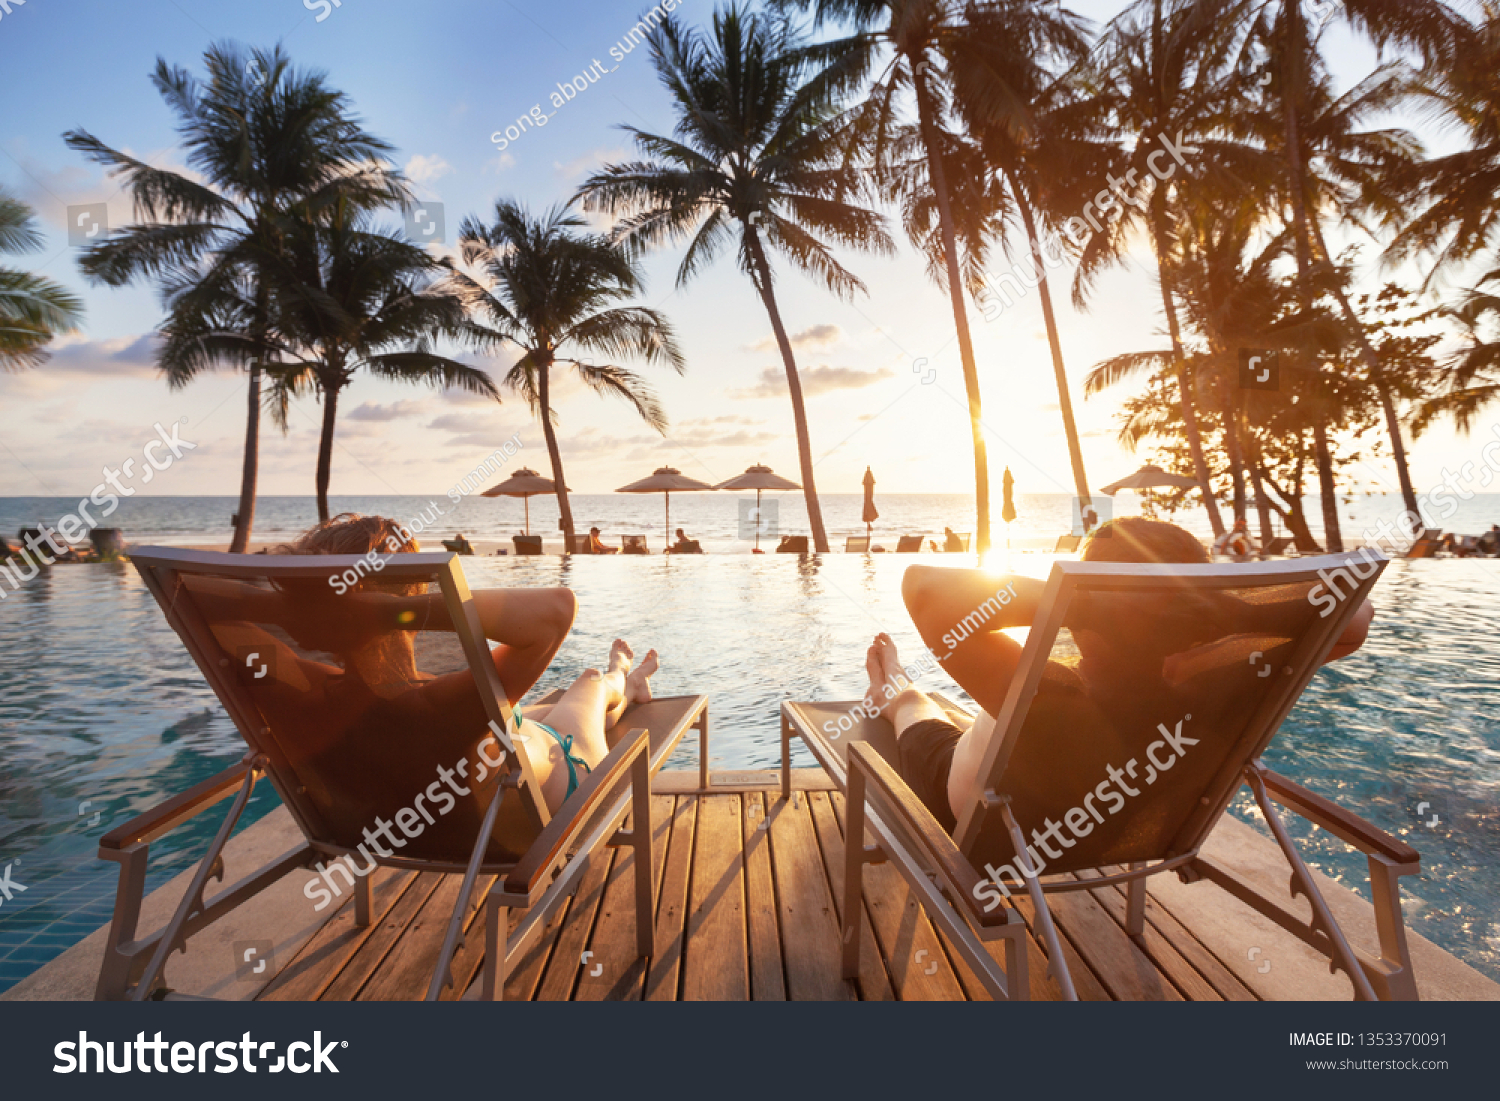 luxury travel, romantic beach getaway holidays for honeymoon couple, tropical vacation in luxurious hotel #1353370091